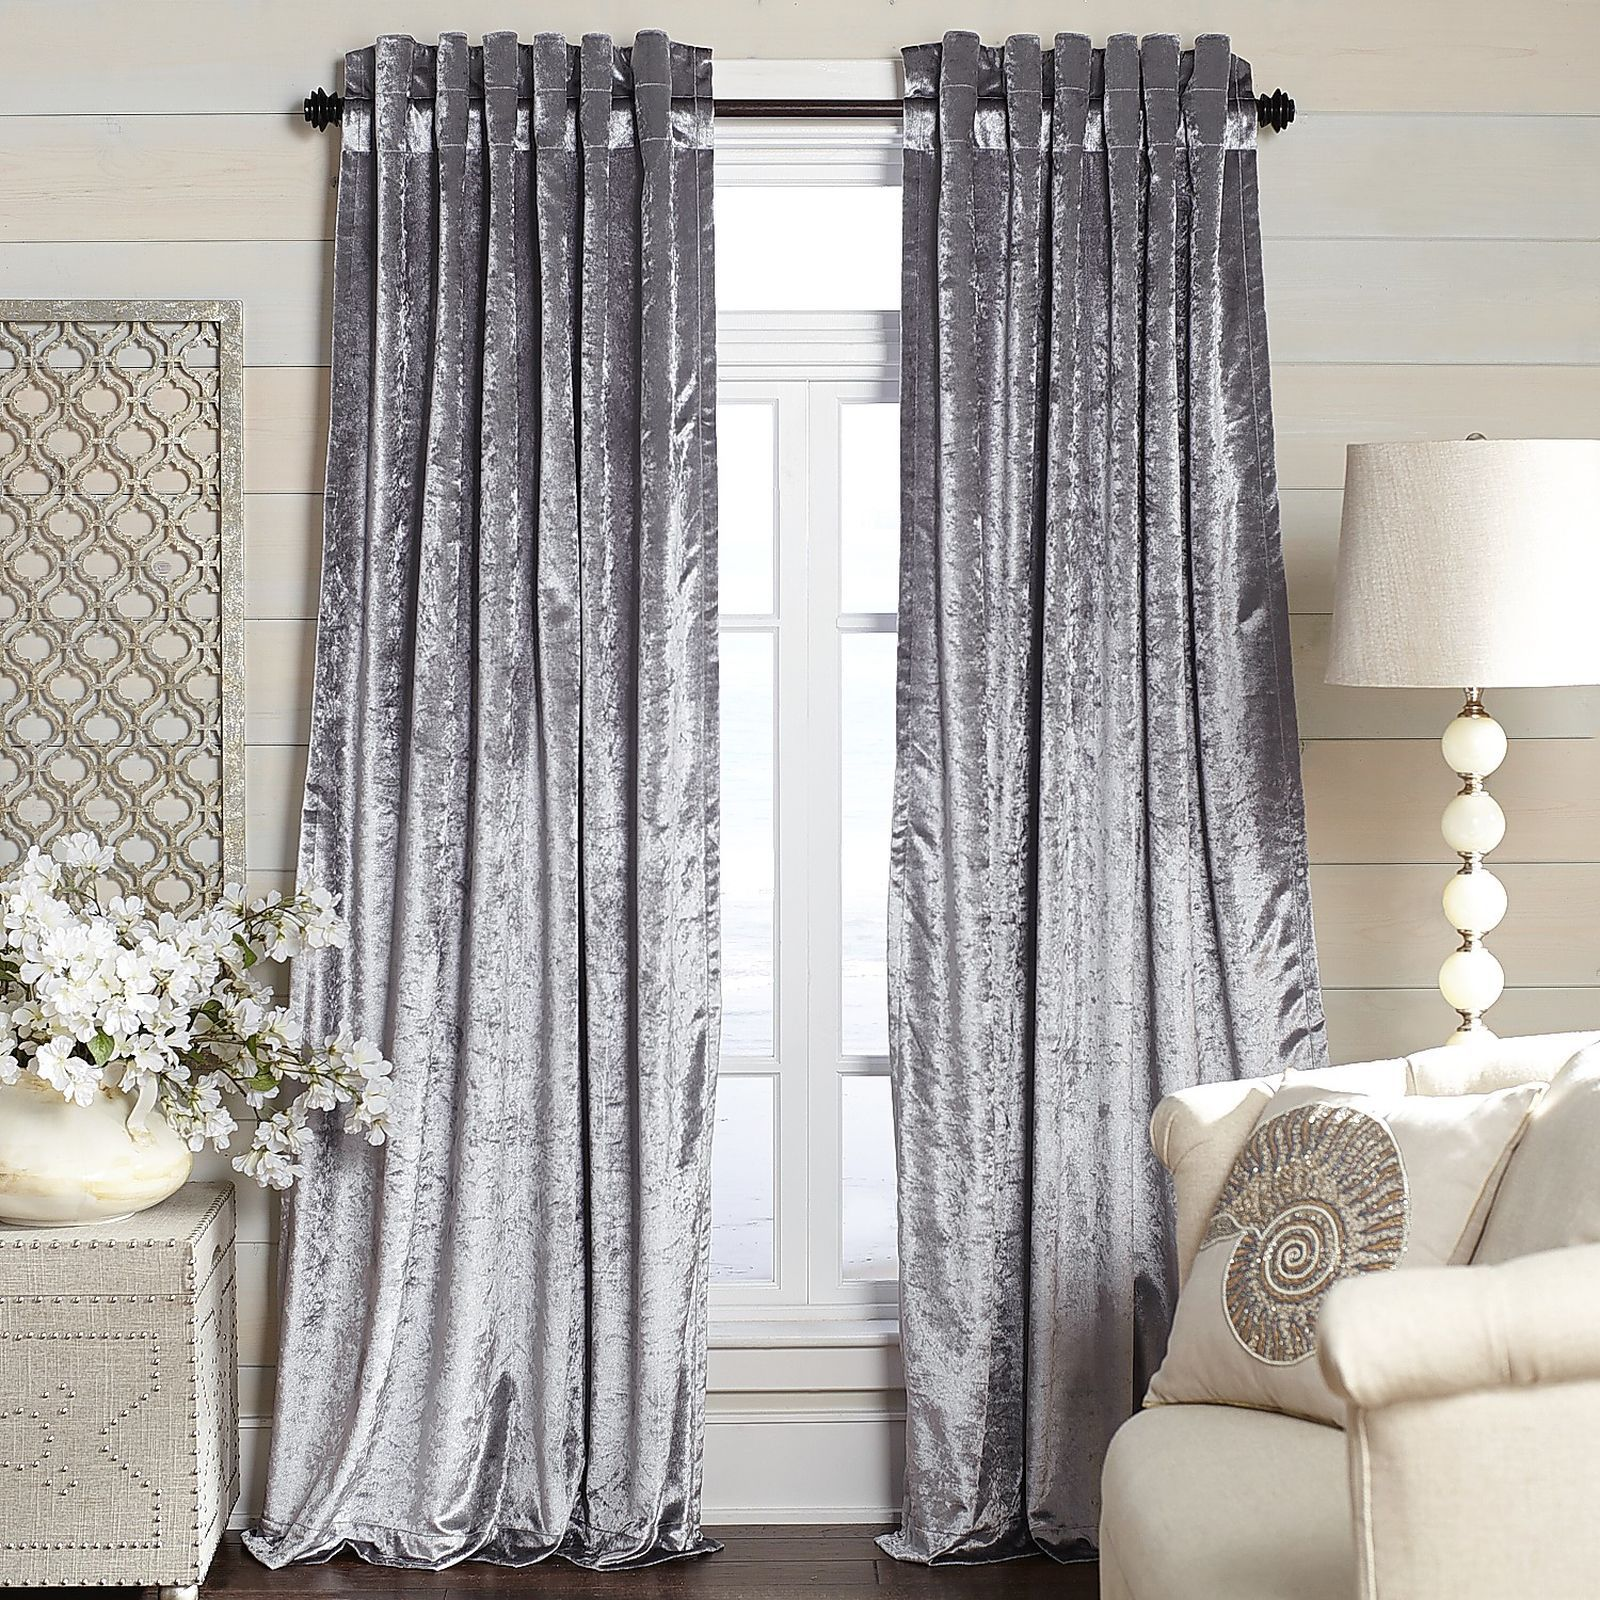 Metallic Velvet Curtain Silver Velvet Curtains Silver Curtains Curtains